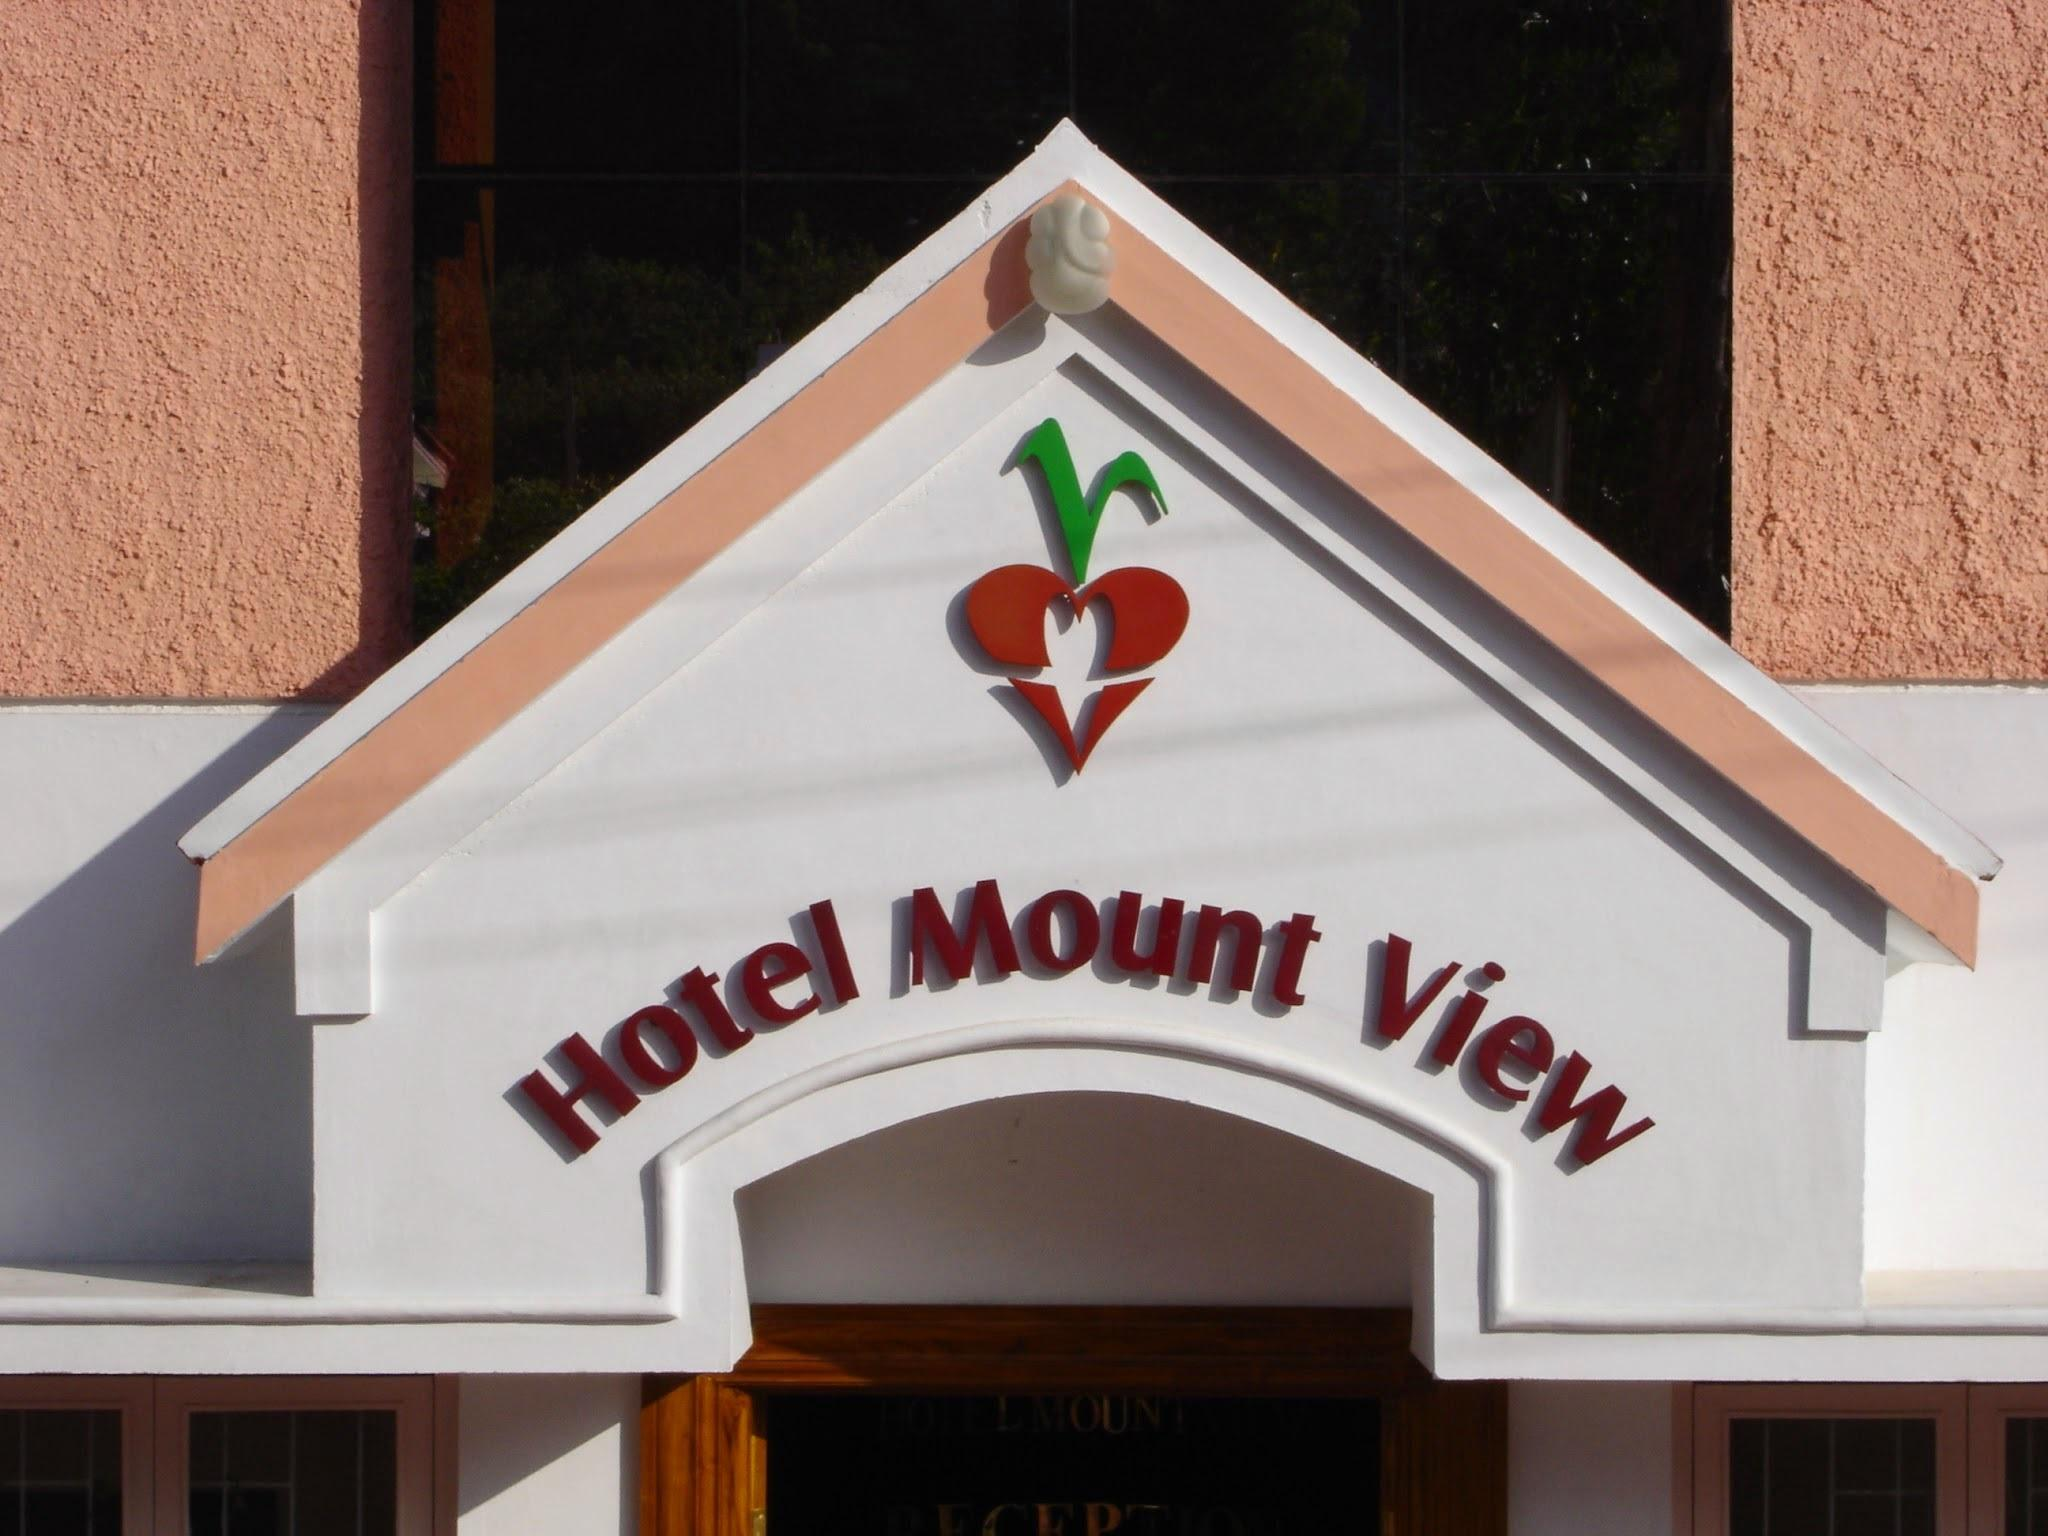 Hotel Mount View